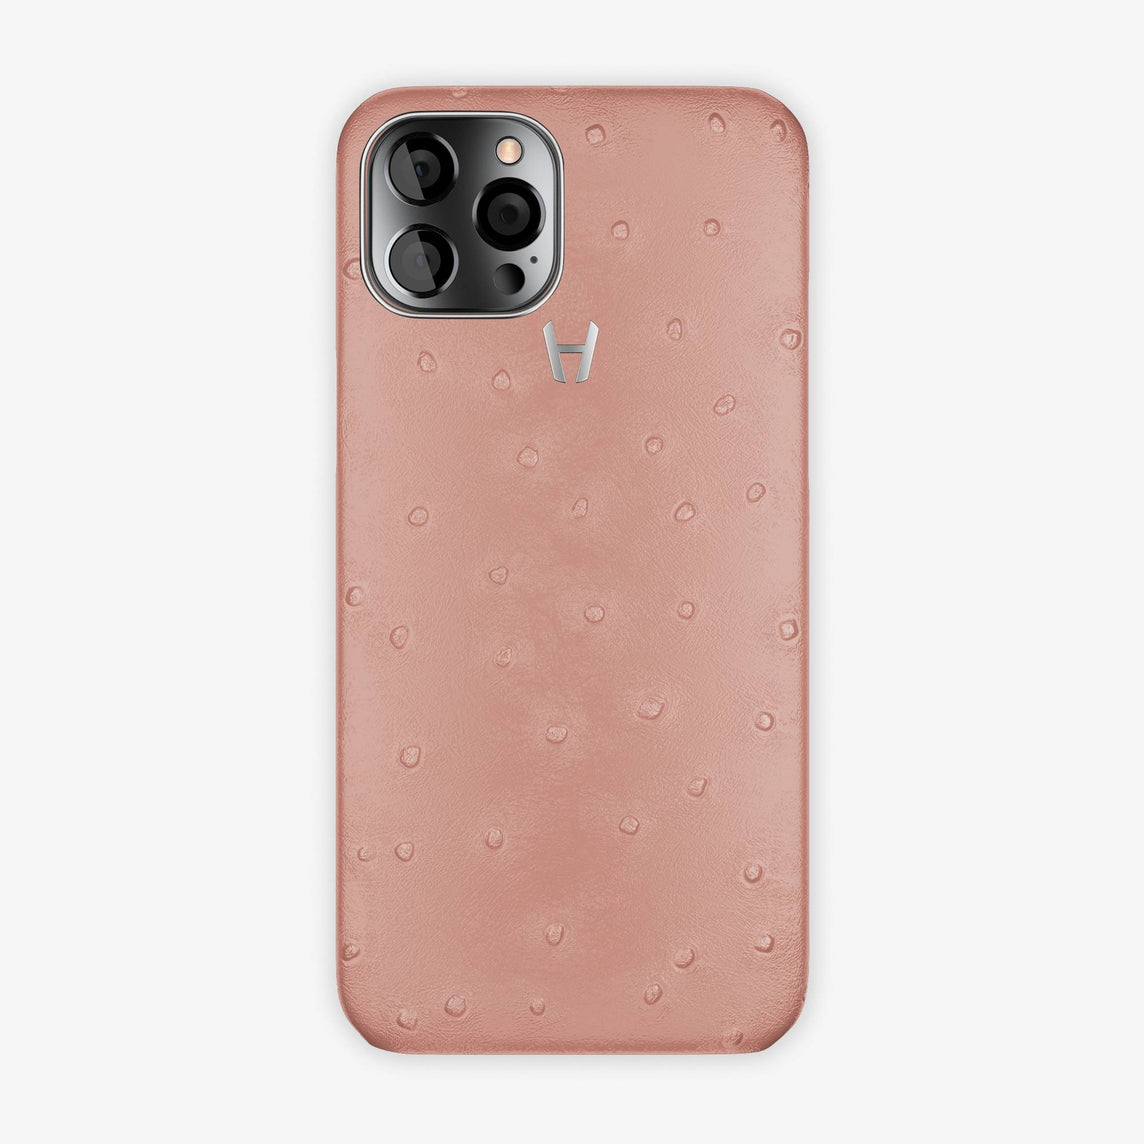 Ostrich Case iPhone 12 Pro Max | Pink - Stainless Steel